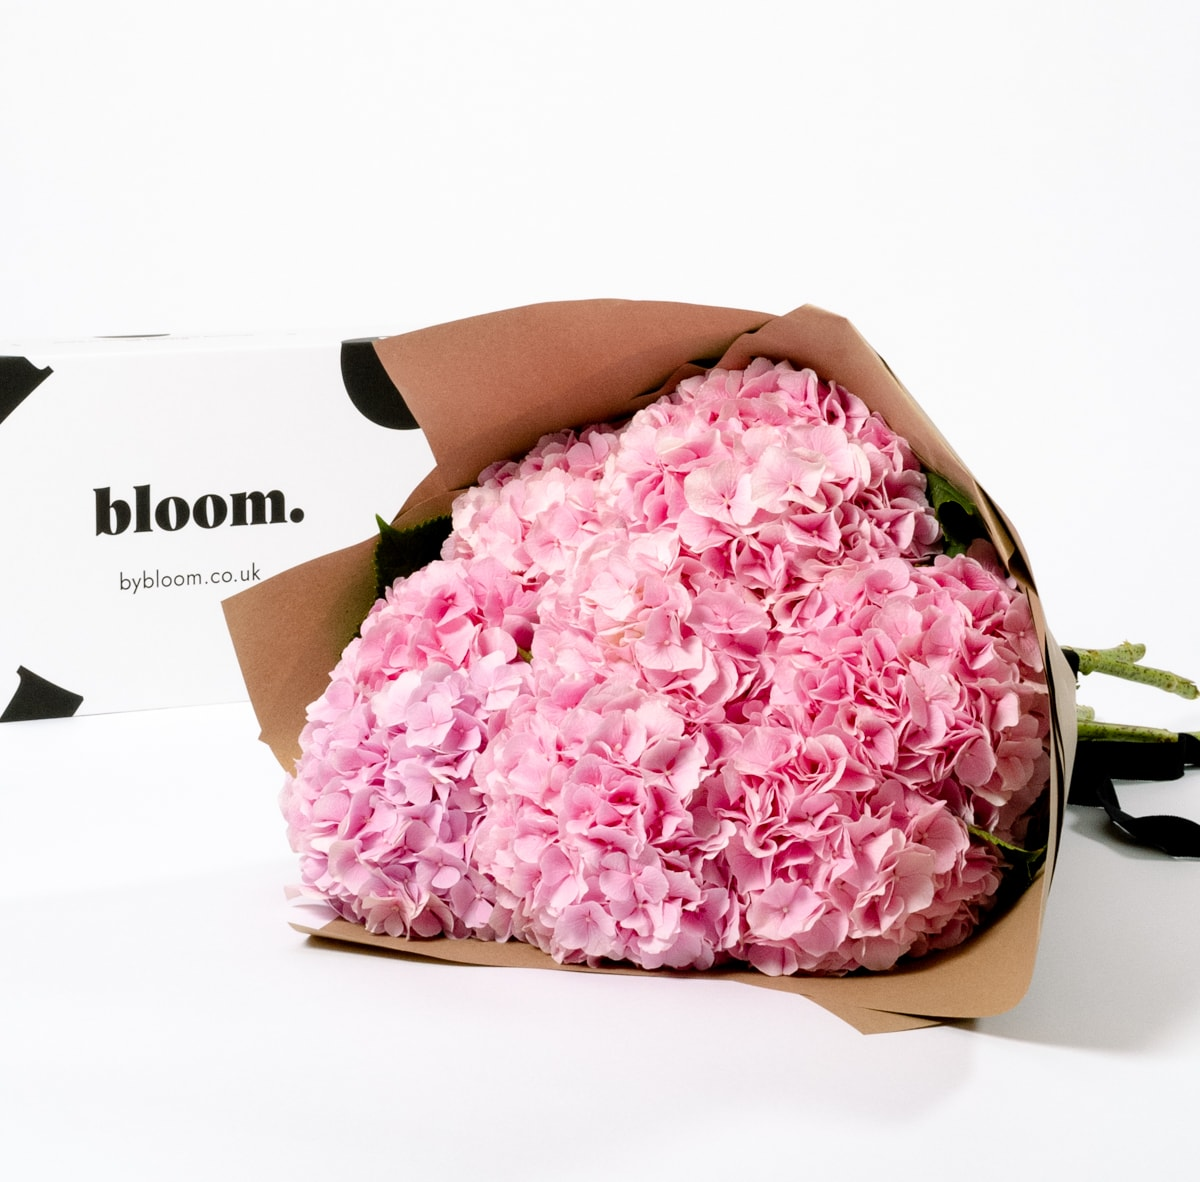 Bloom Flower Delivery | Cotton Candy Pink Hydrangea